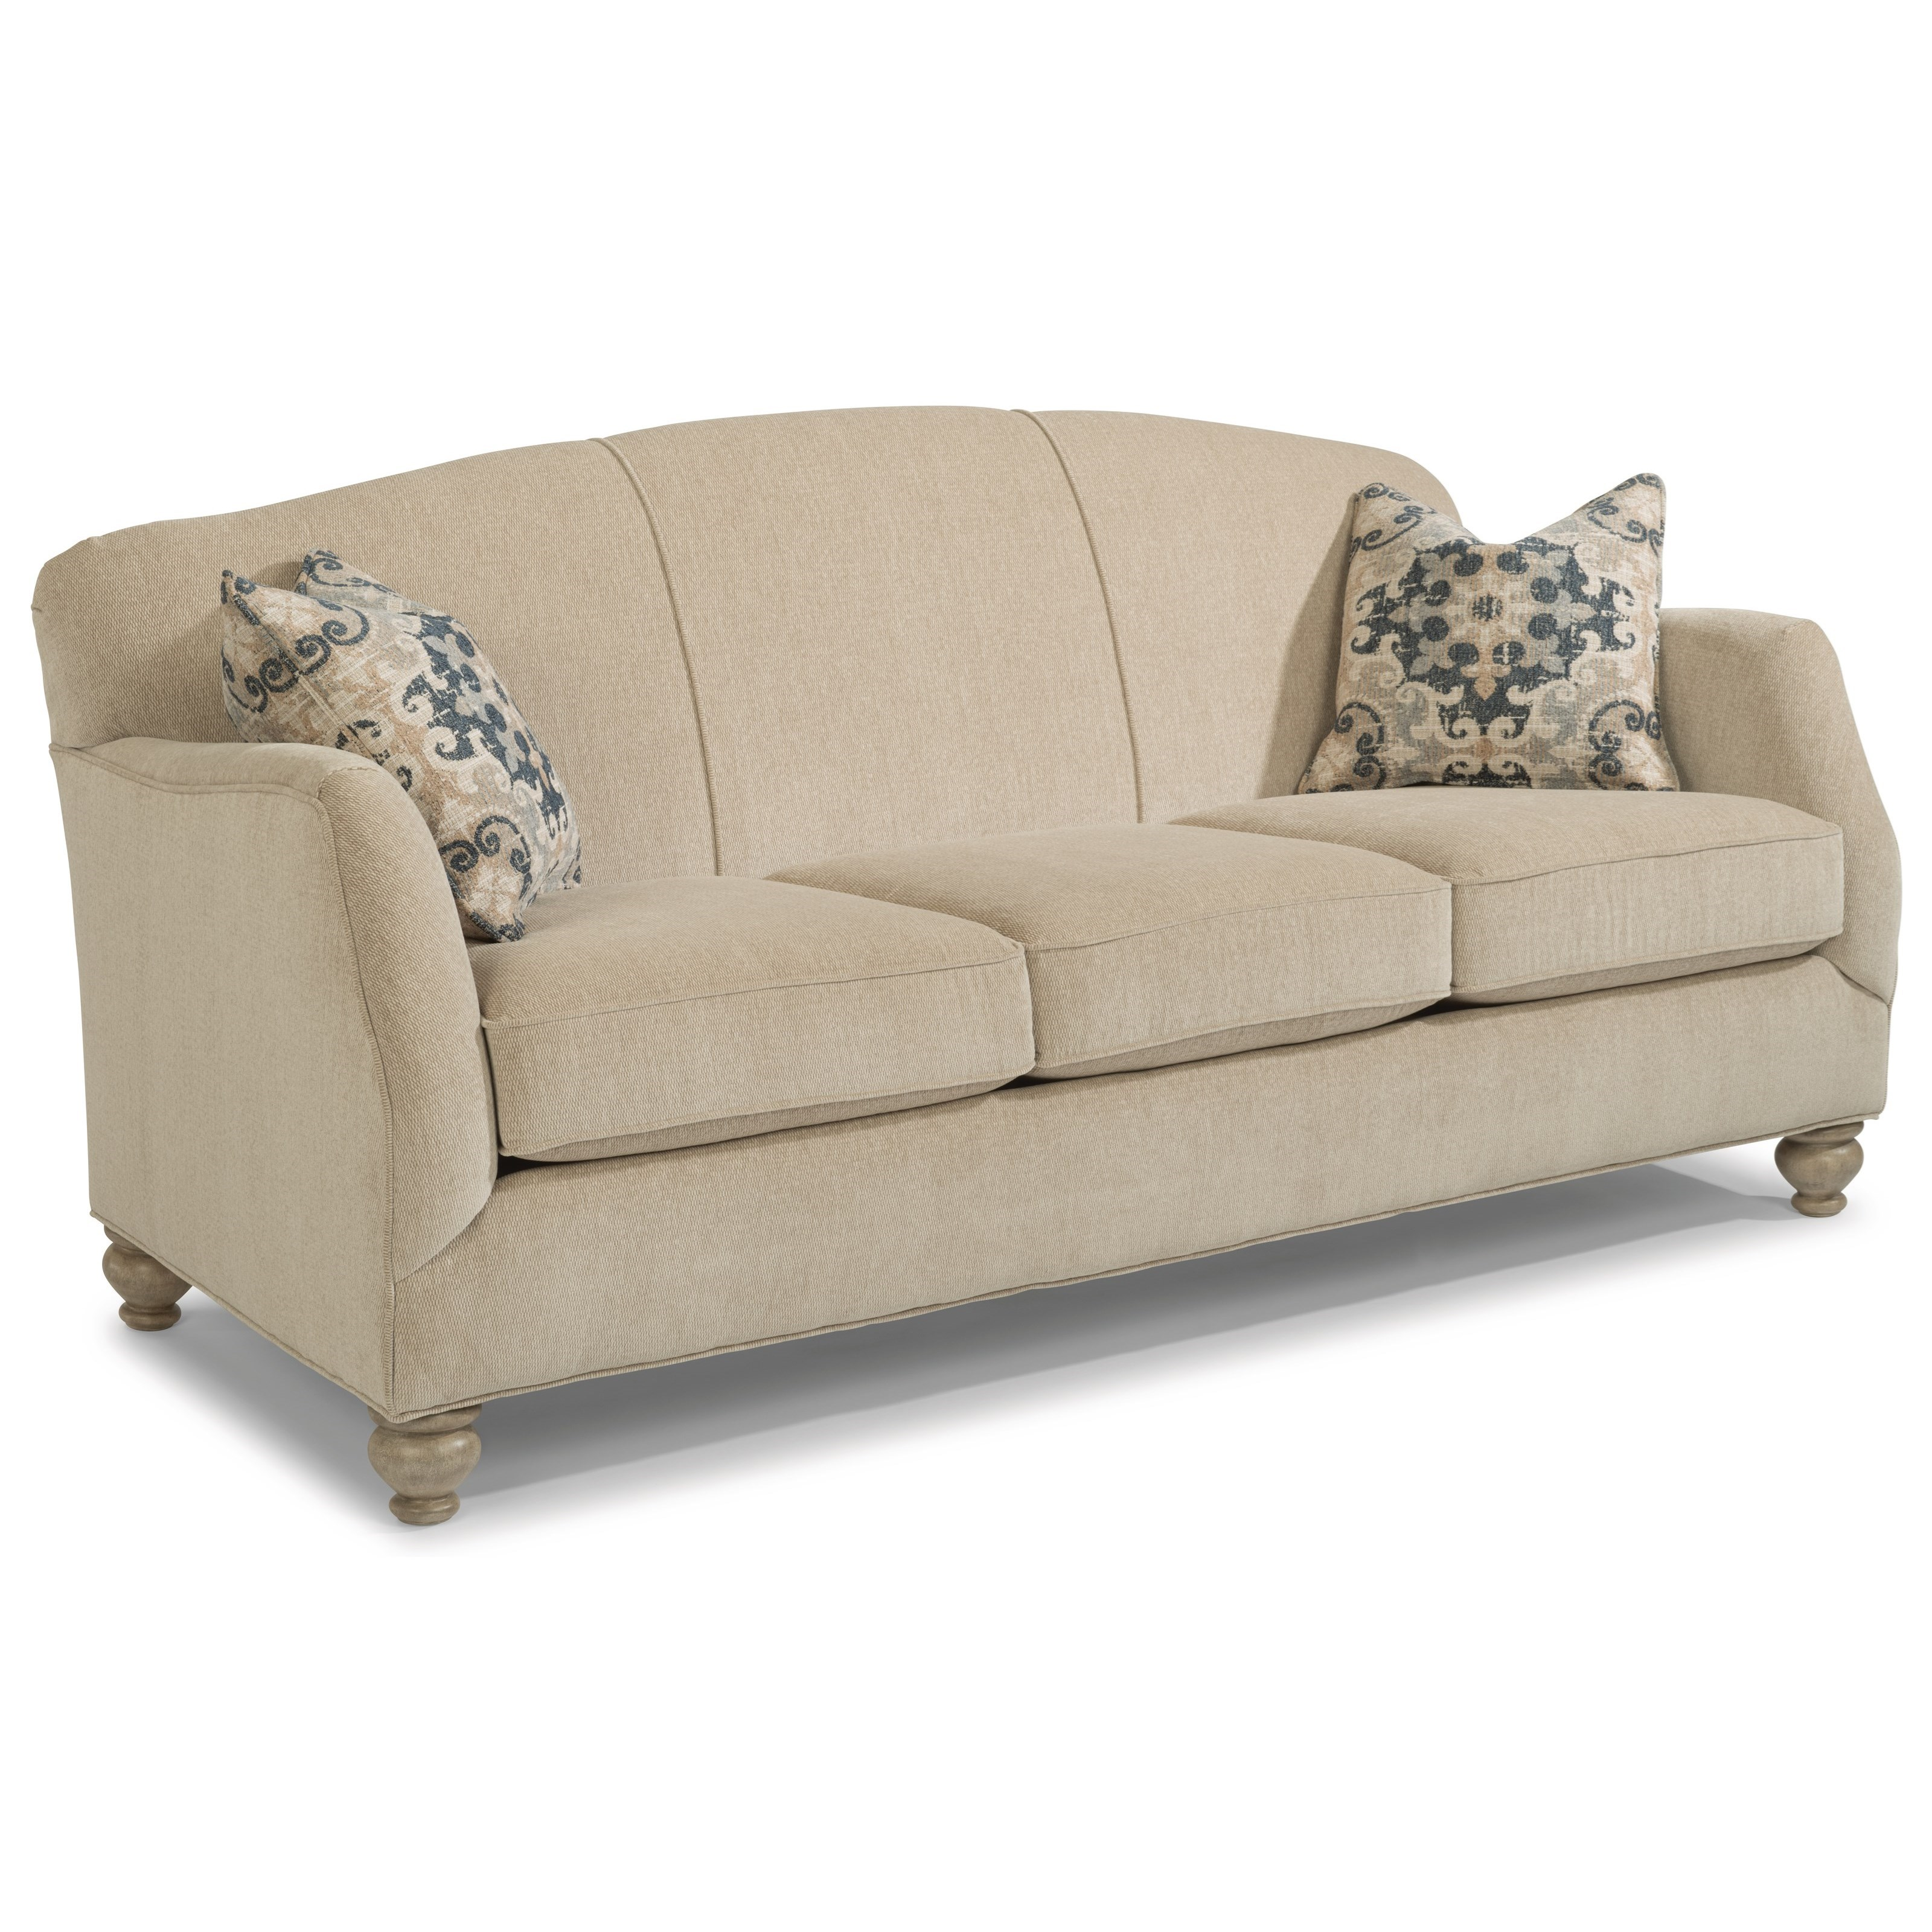 Plymouth Furniture Clearance Flexsteel Plymouth Transitional Sofa With Bun Feet Turk